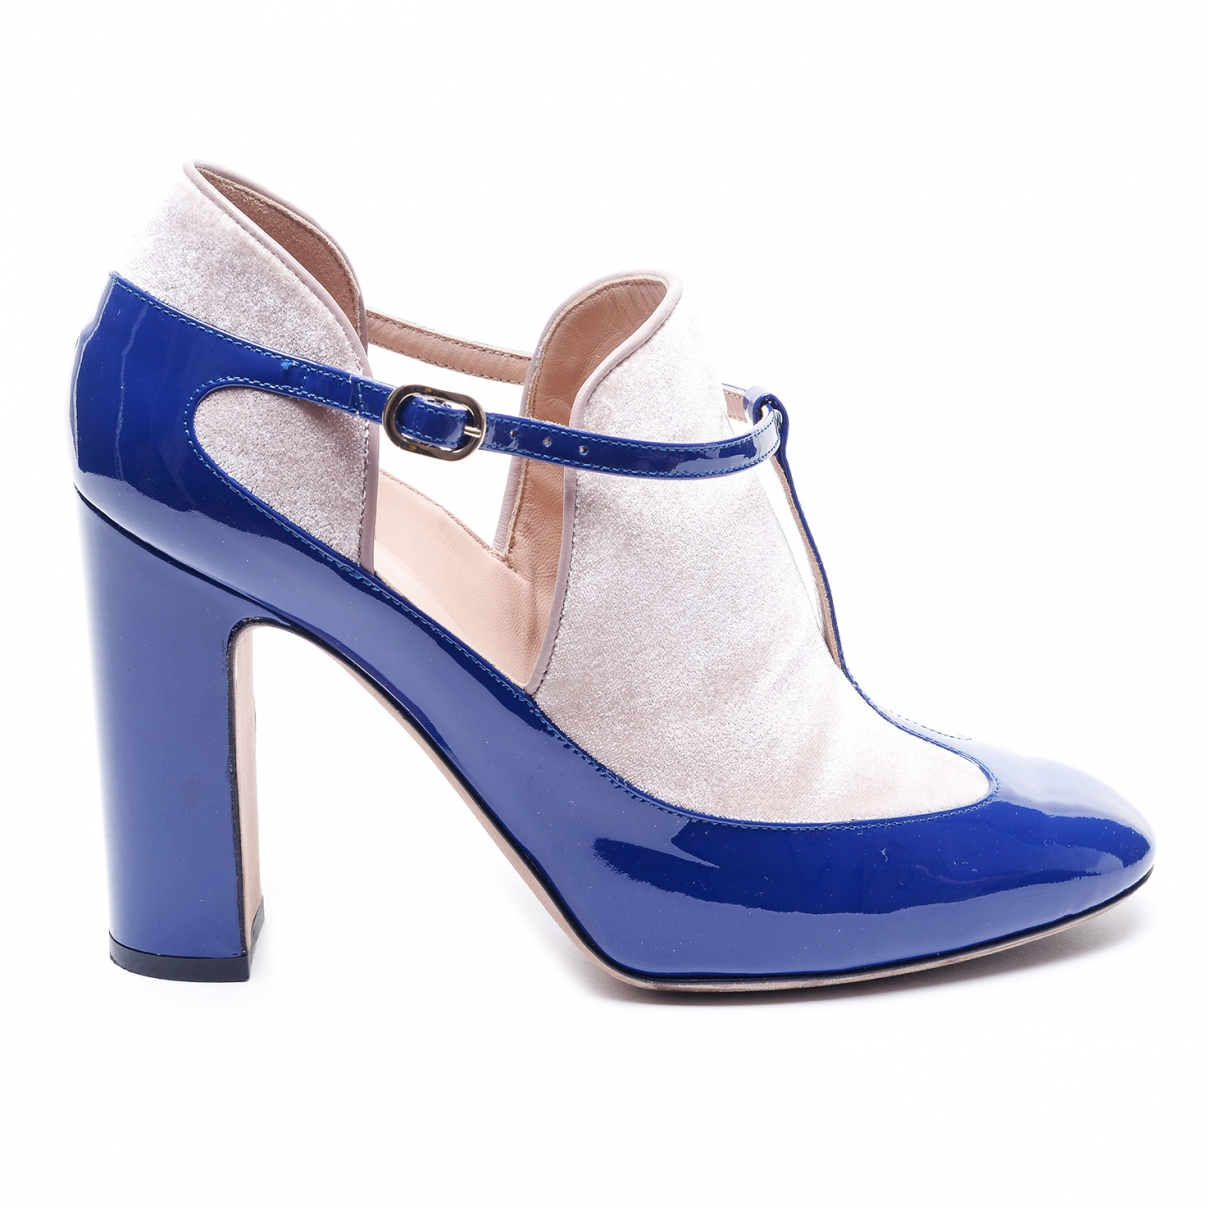 Valentino Garavani \N Blue Patent leather Heels for Women 38 EU